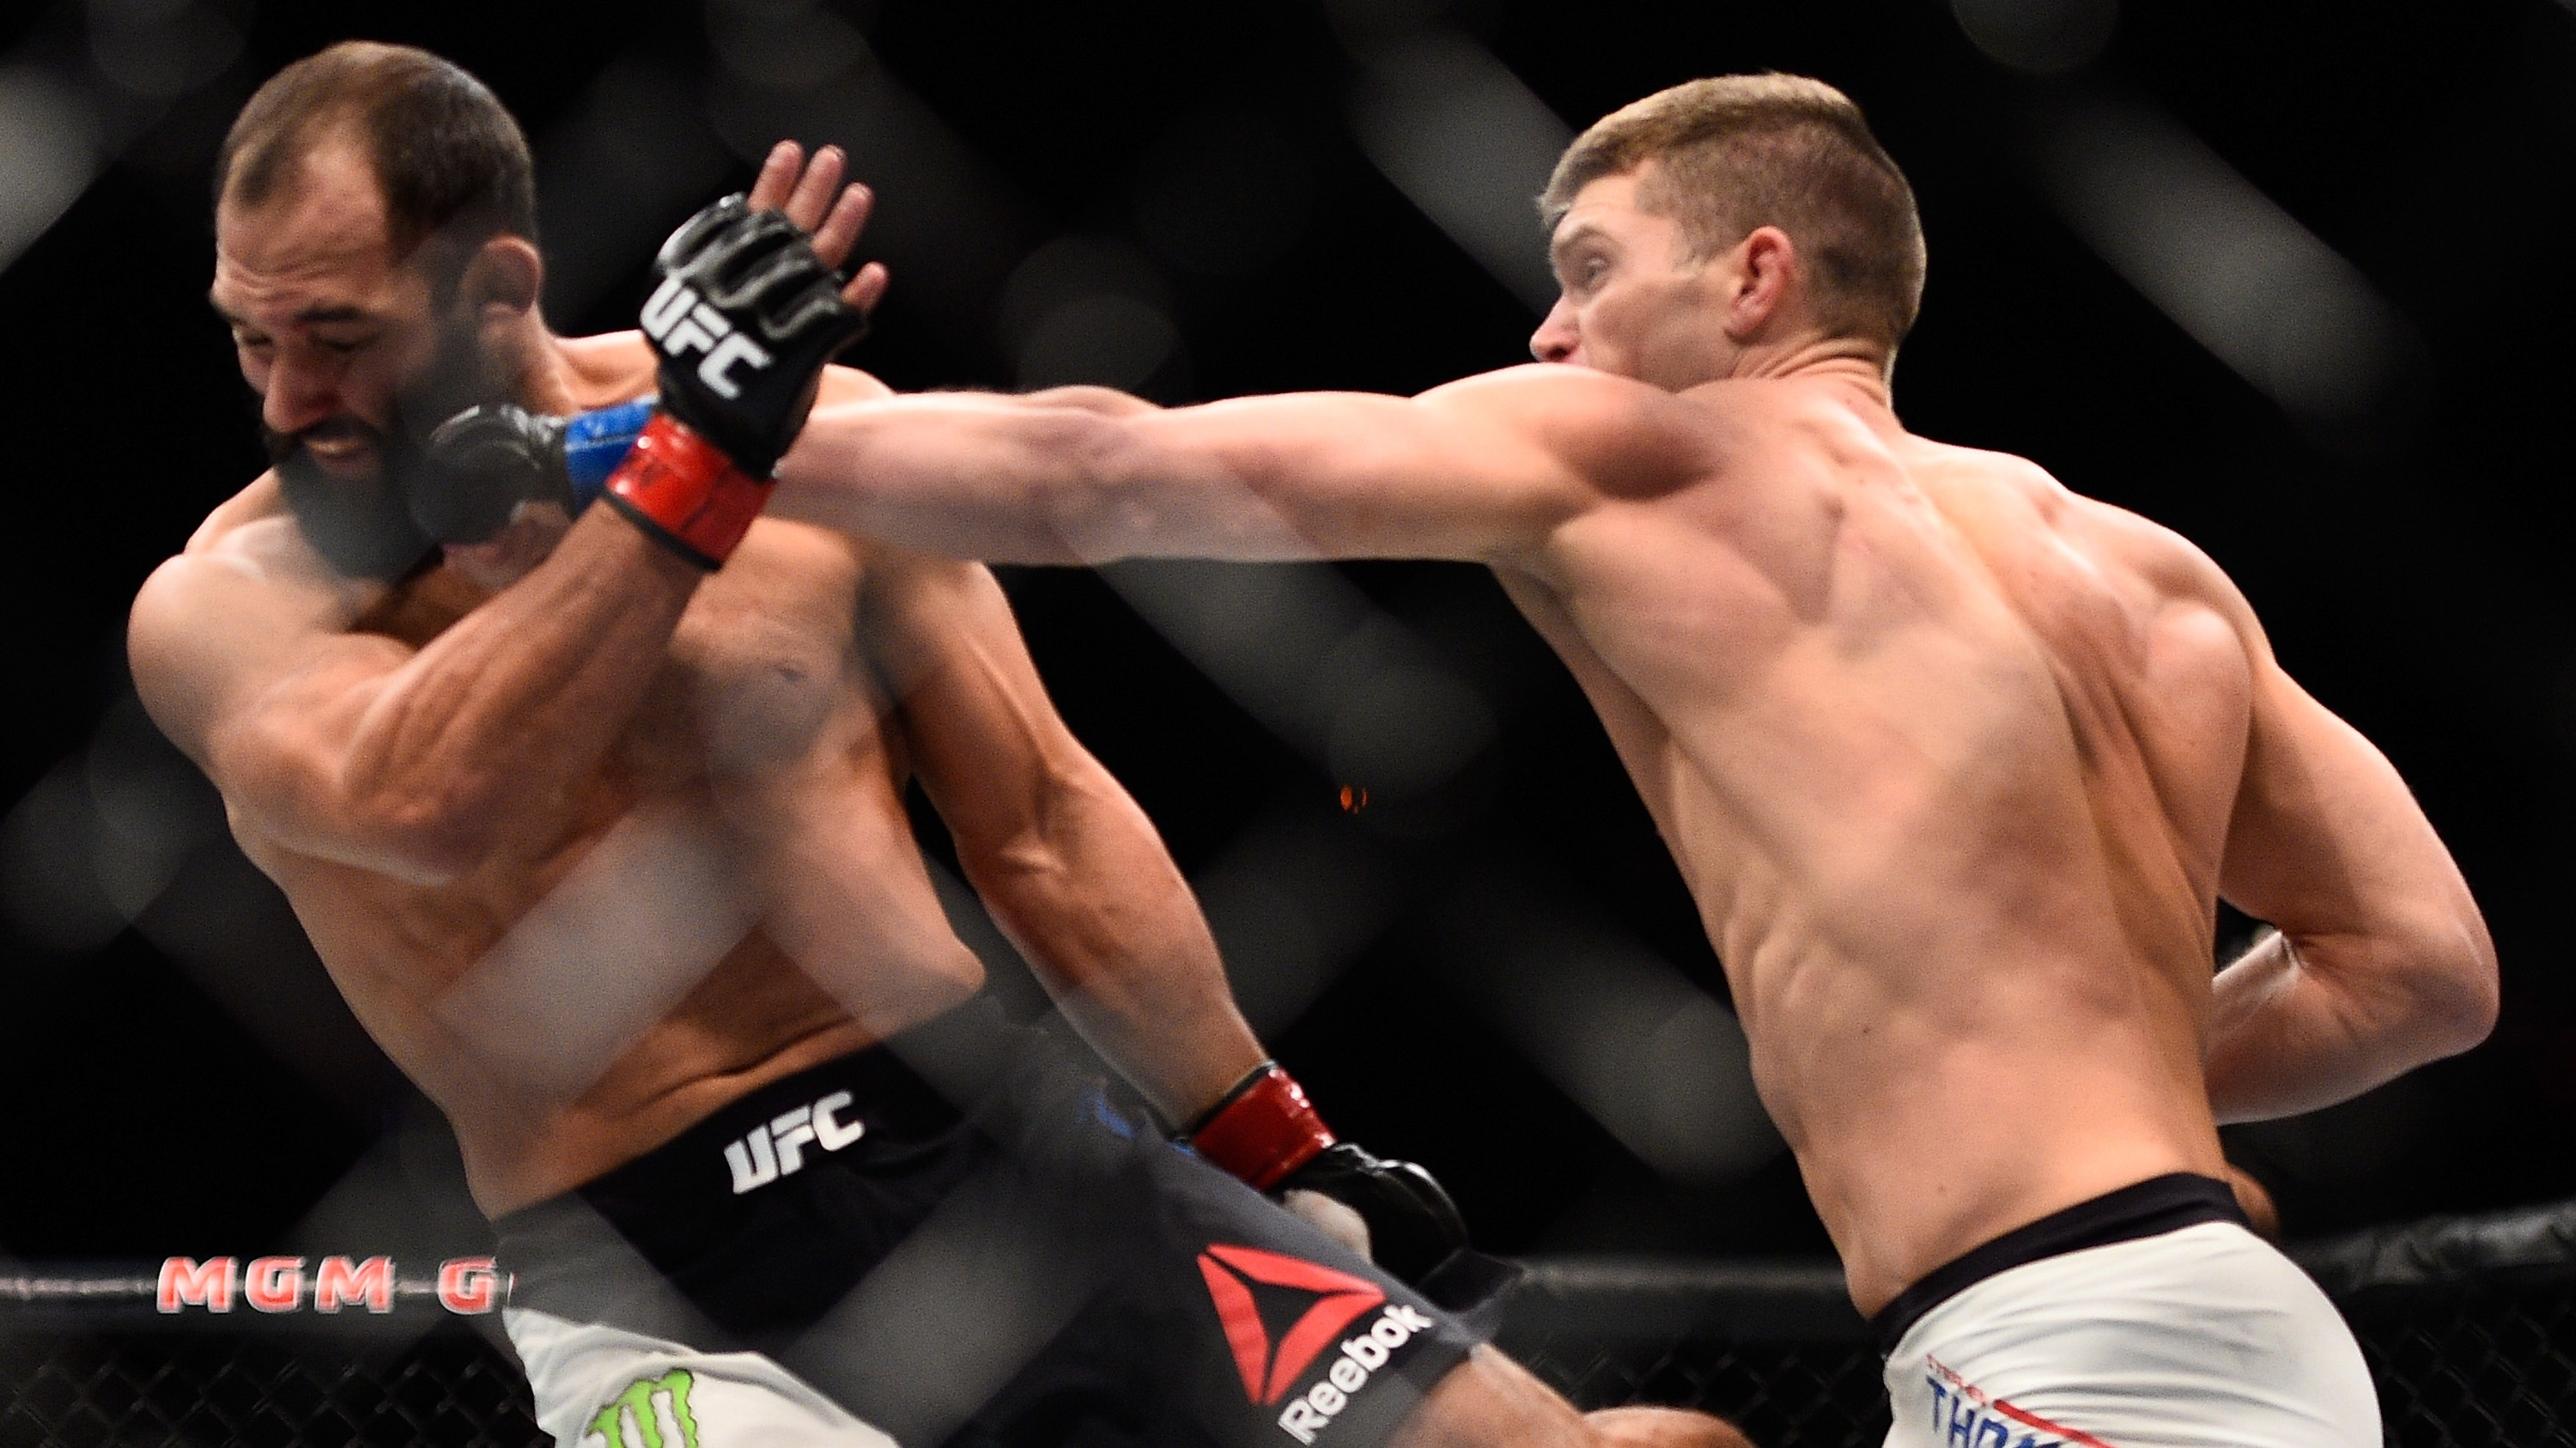 Stephen Thompson (Photo by Jeff Bottari/Zuffa LLC/Zuffa LLC via Getty Images)